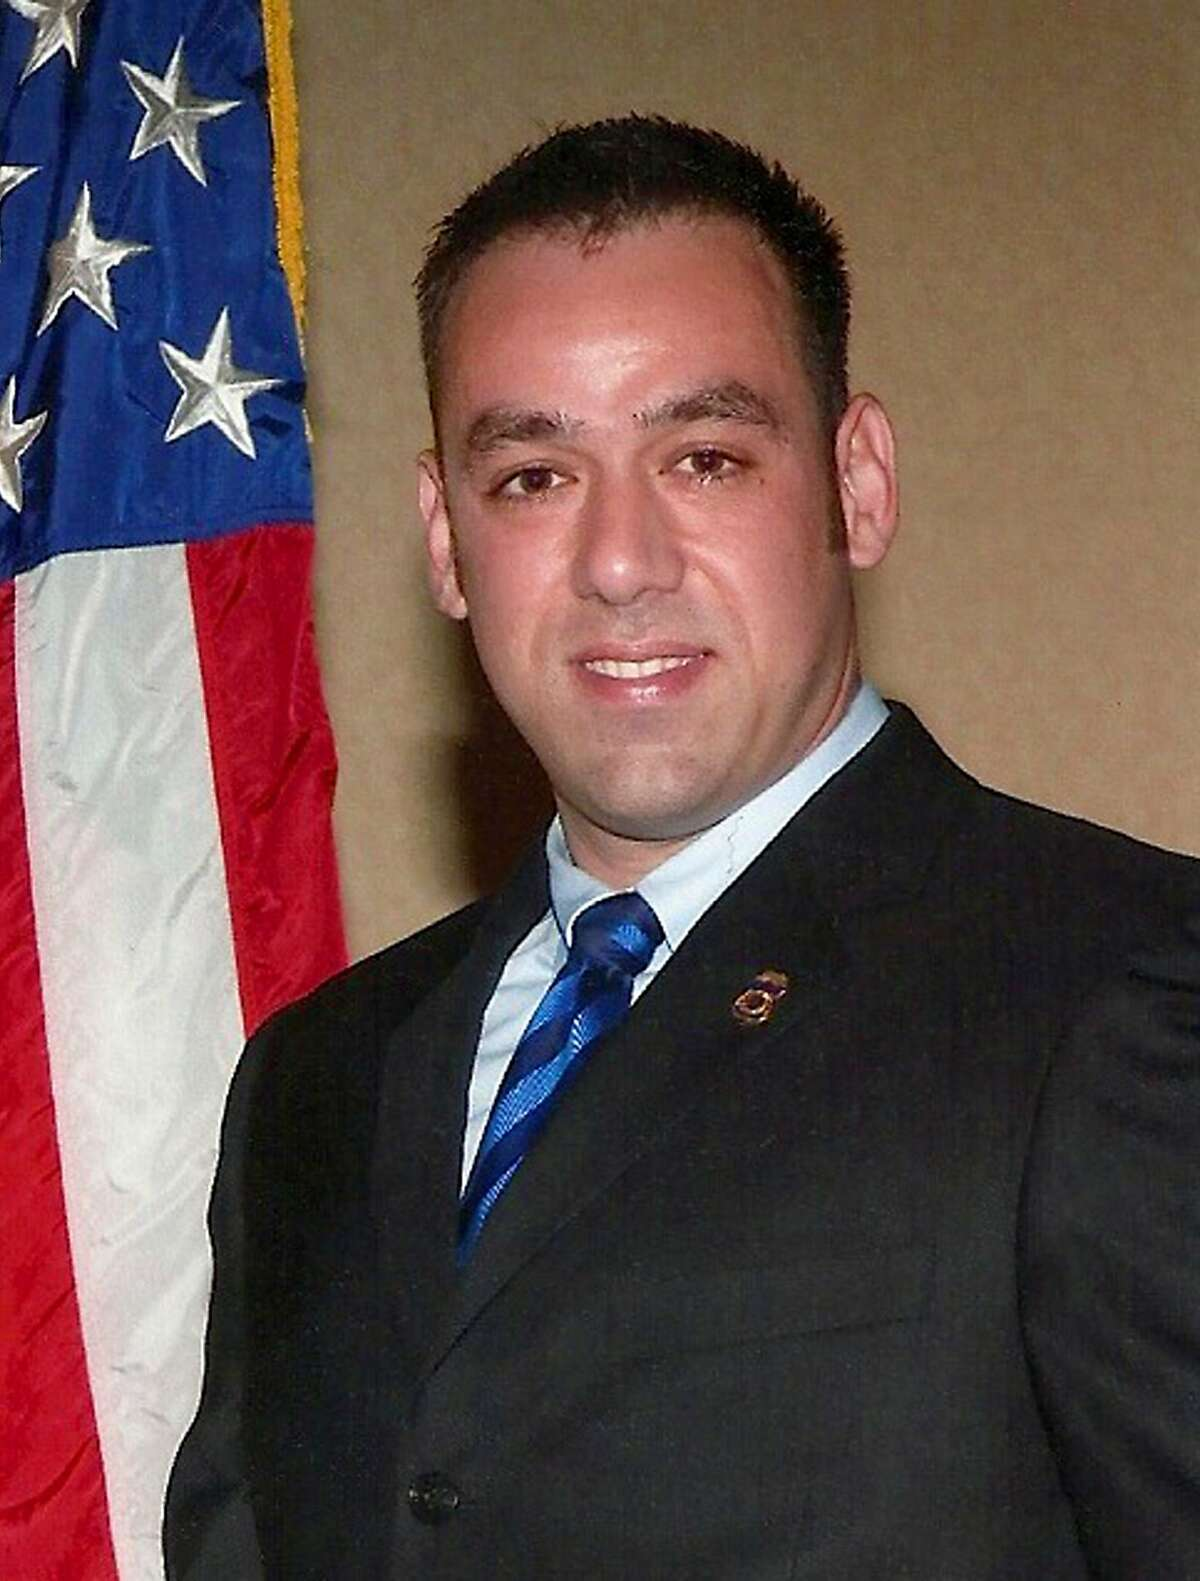 (FILES) This file photo taken on February 16, 2011 shows shows US Immigration and Customs Enforcement (ICE) Special Agent Jaime Zapata .